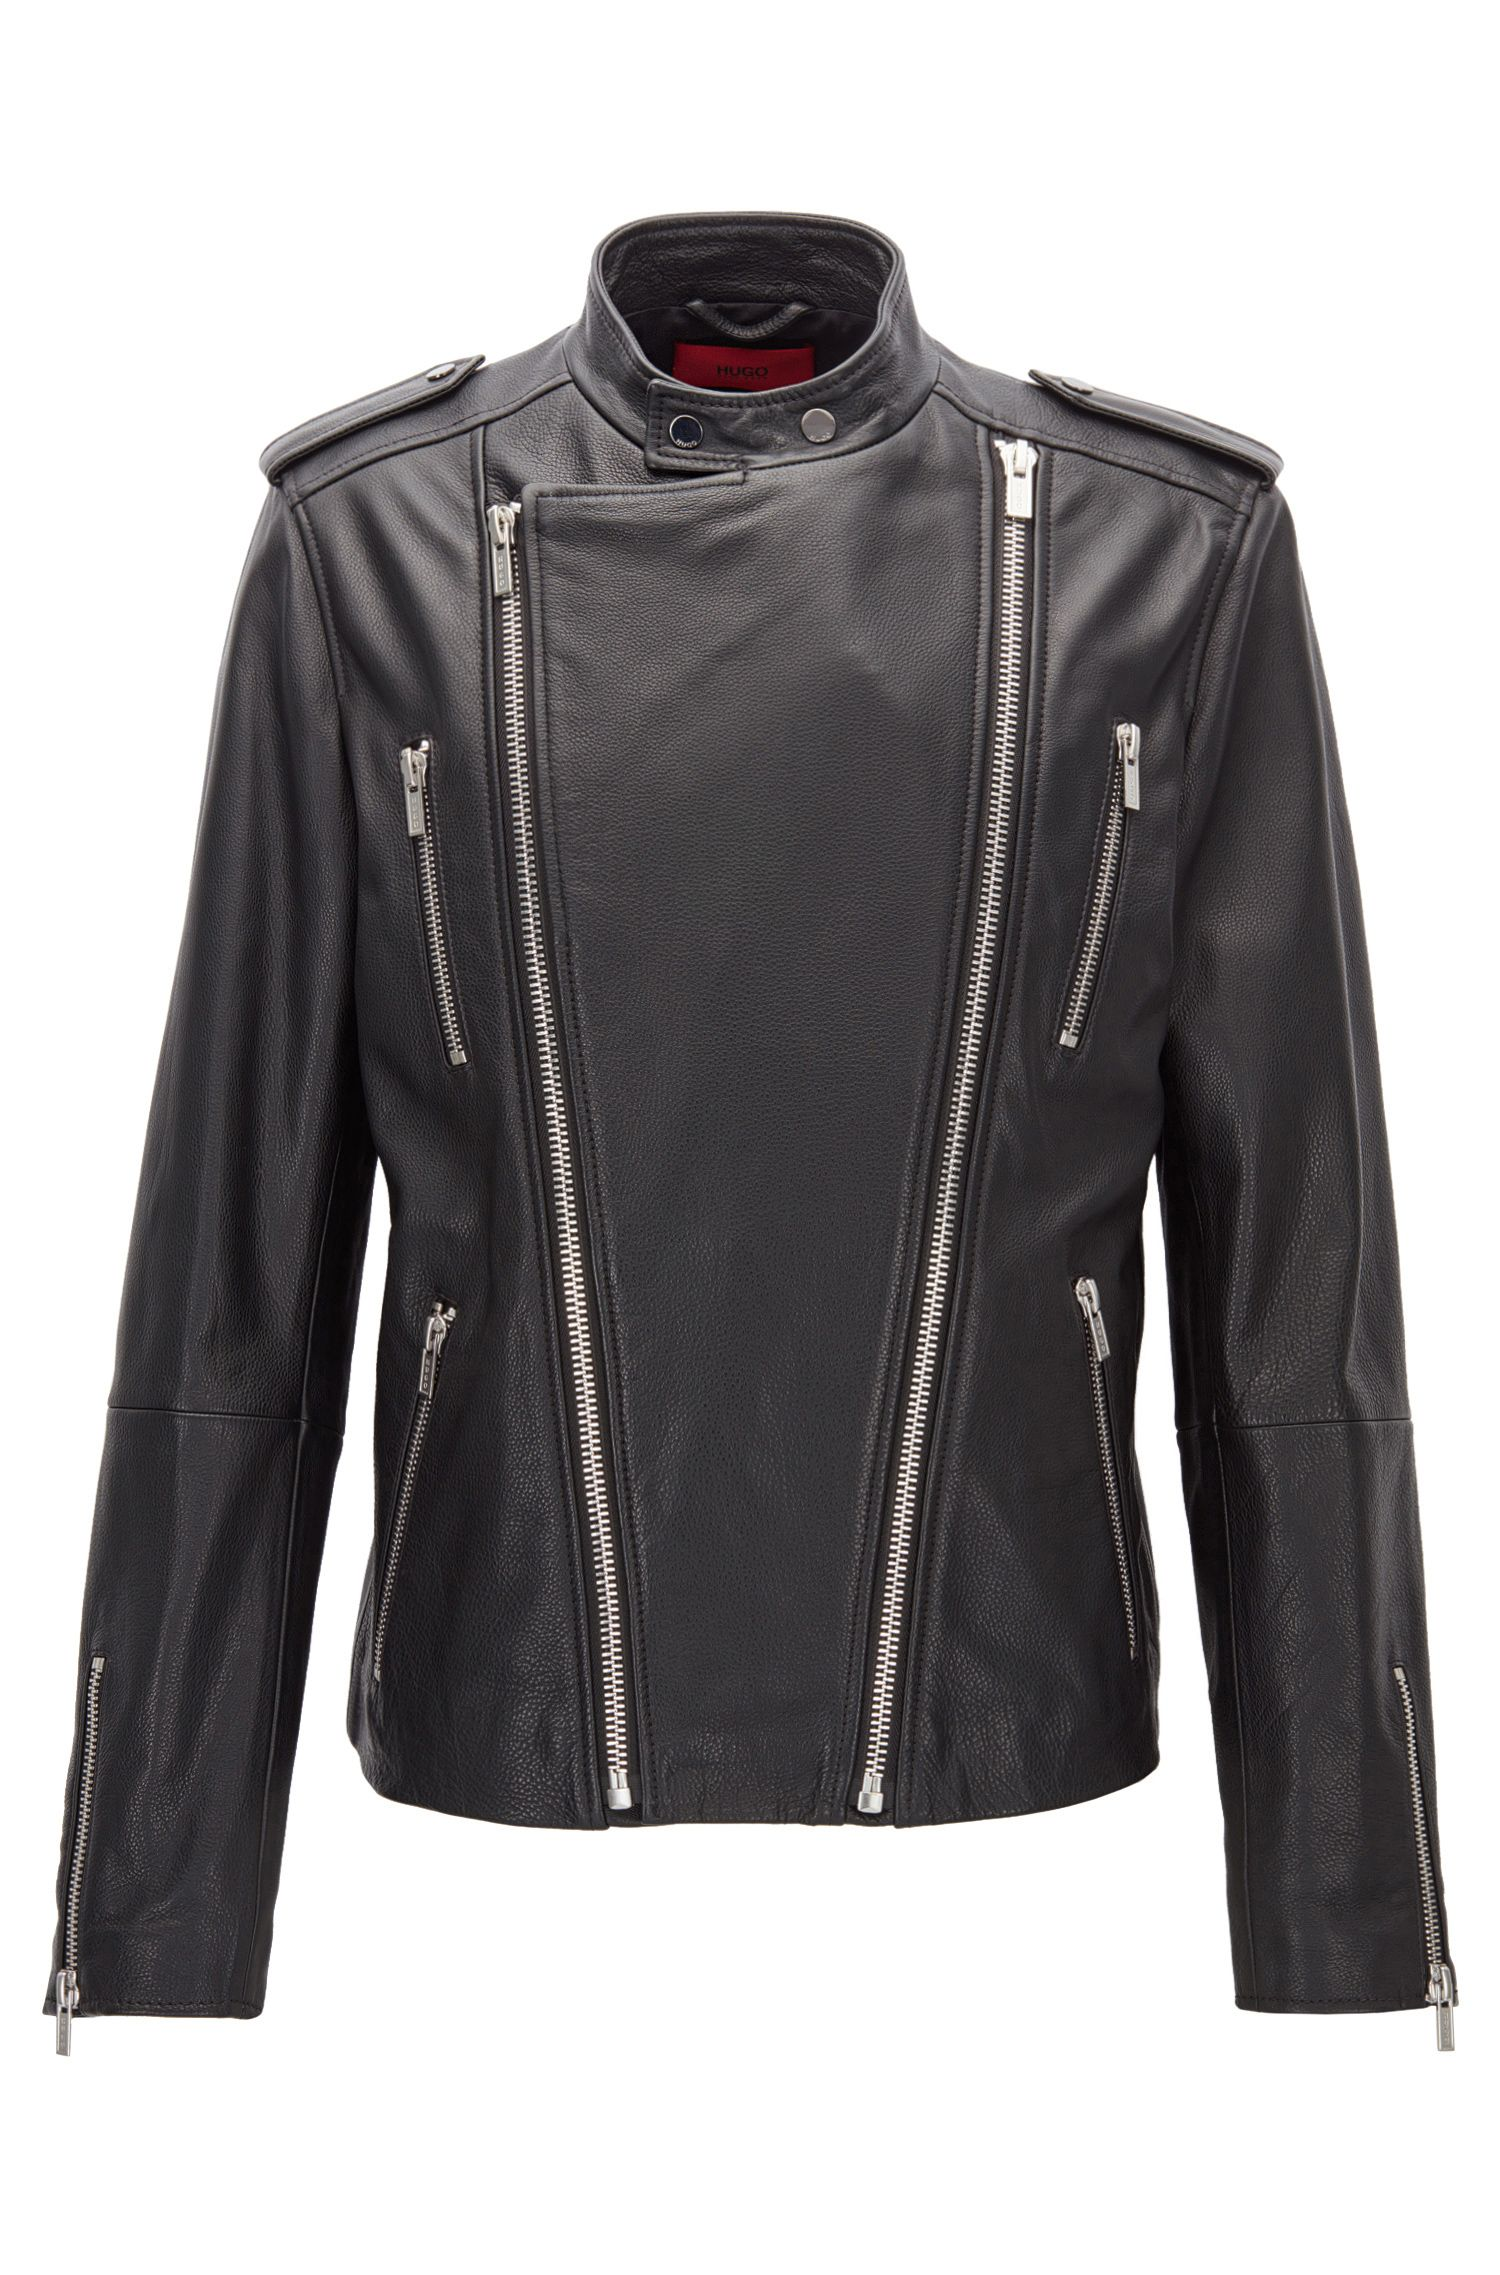 Blouson de motard Slim Fit en cuir à la finition grainée, à double zip